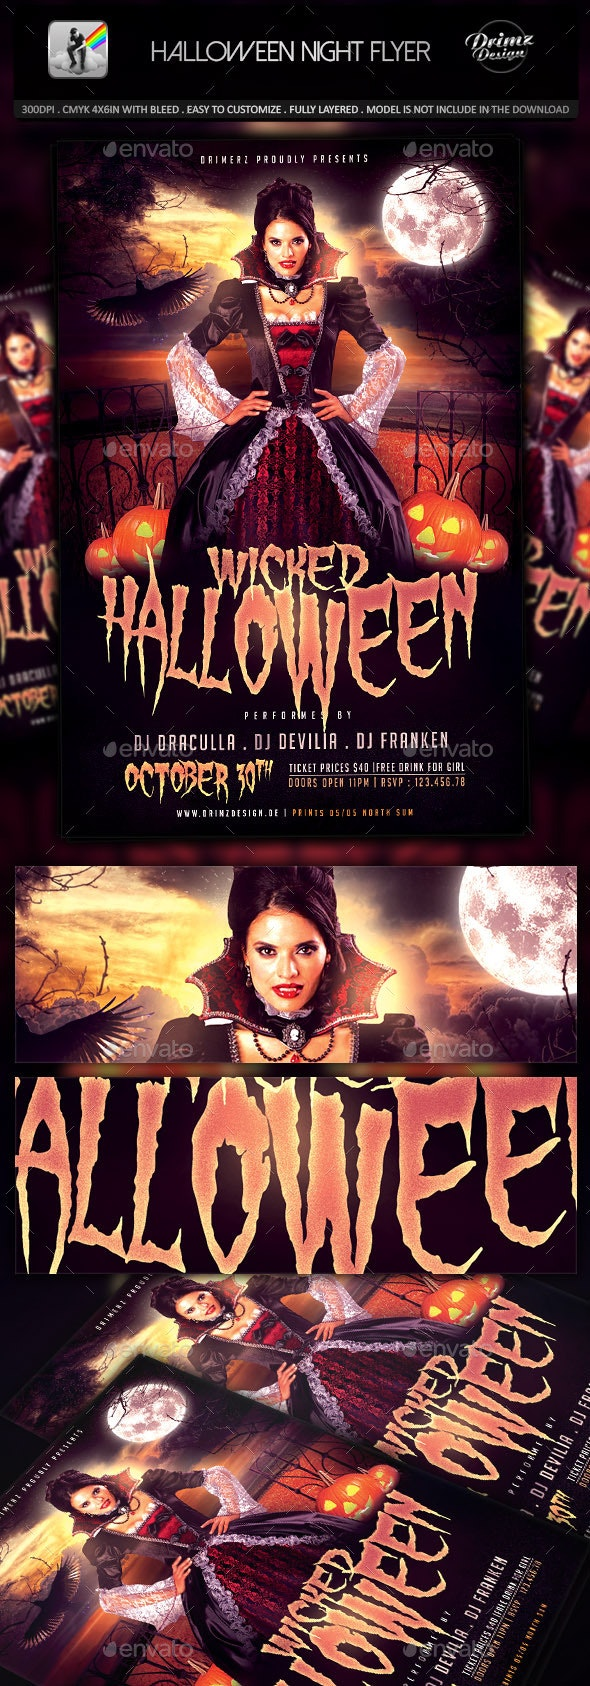 The Halloween Flyer - Events Flyers